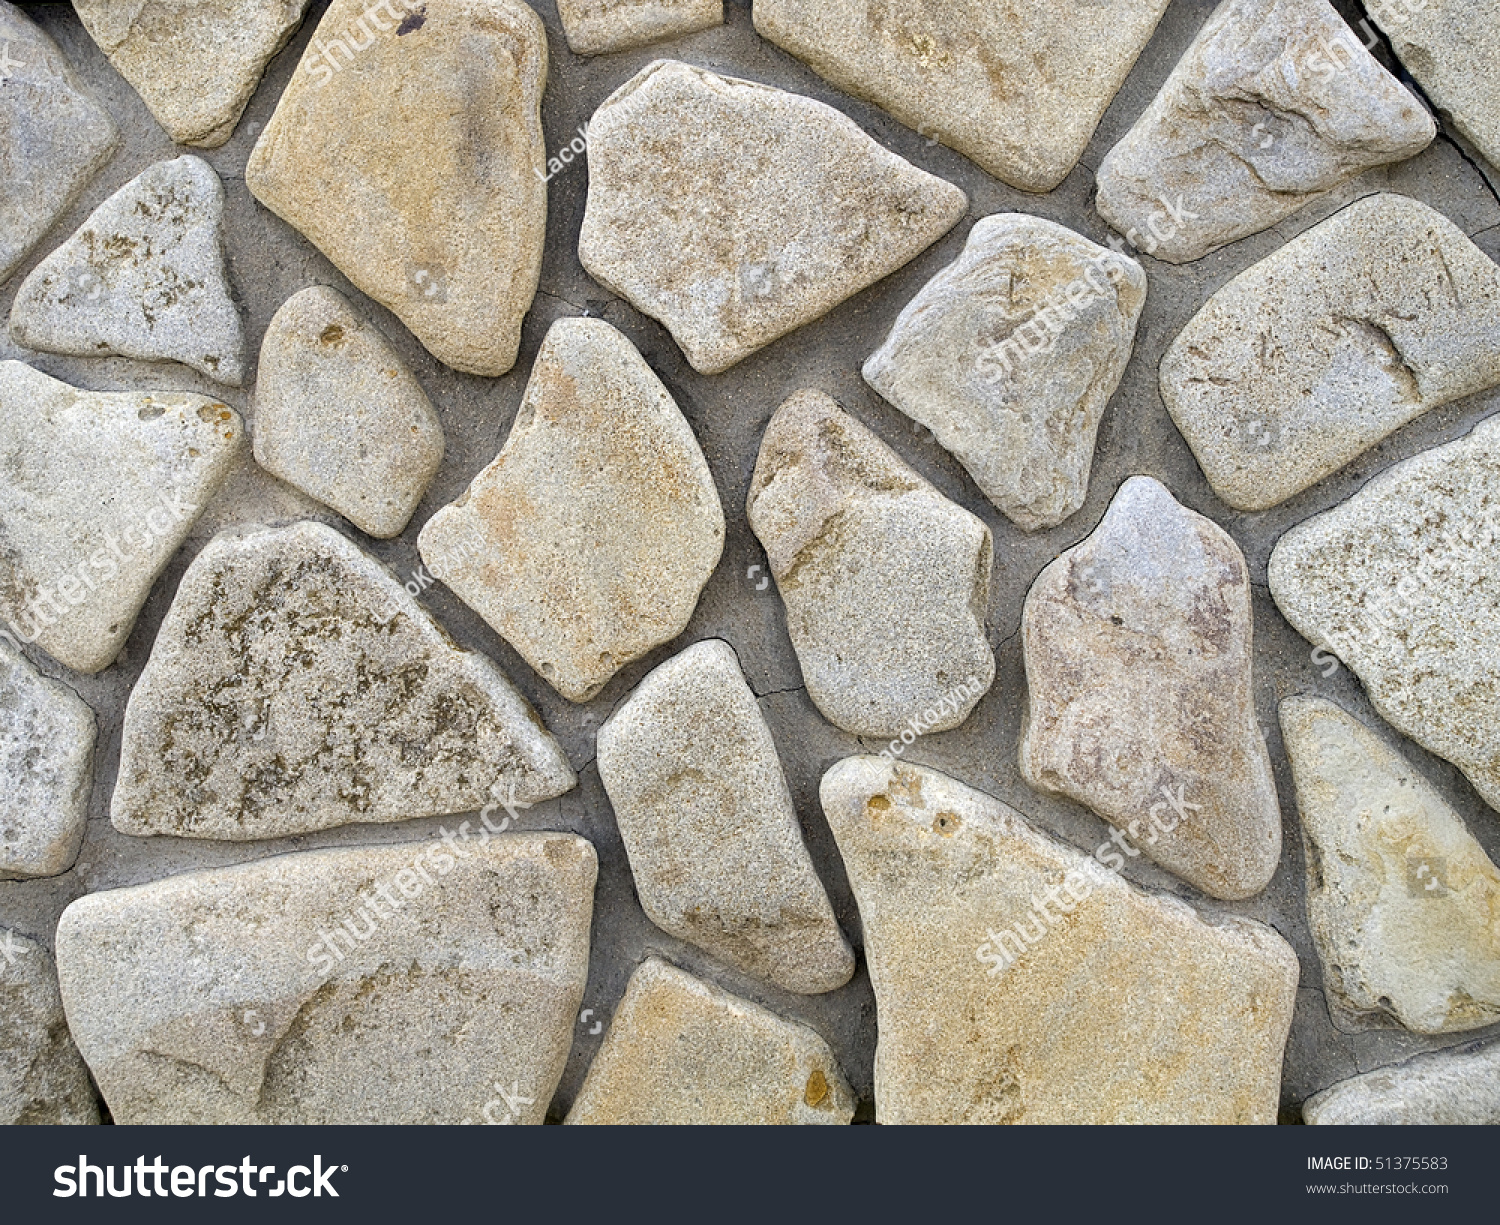 Natural Stone Texture : Abstract background of natural stone texture stock photo